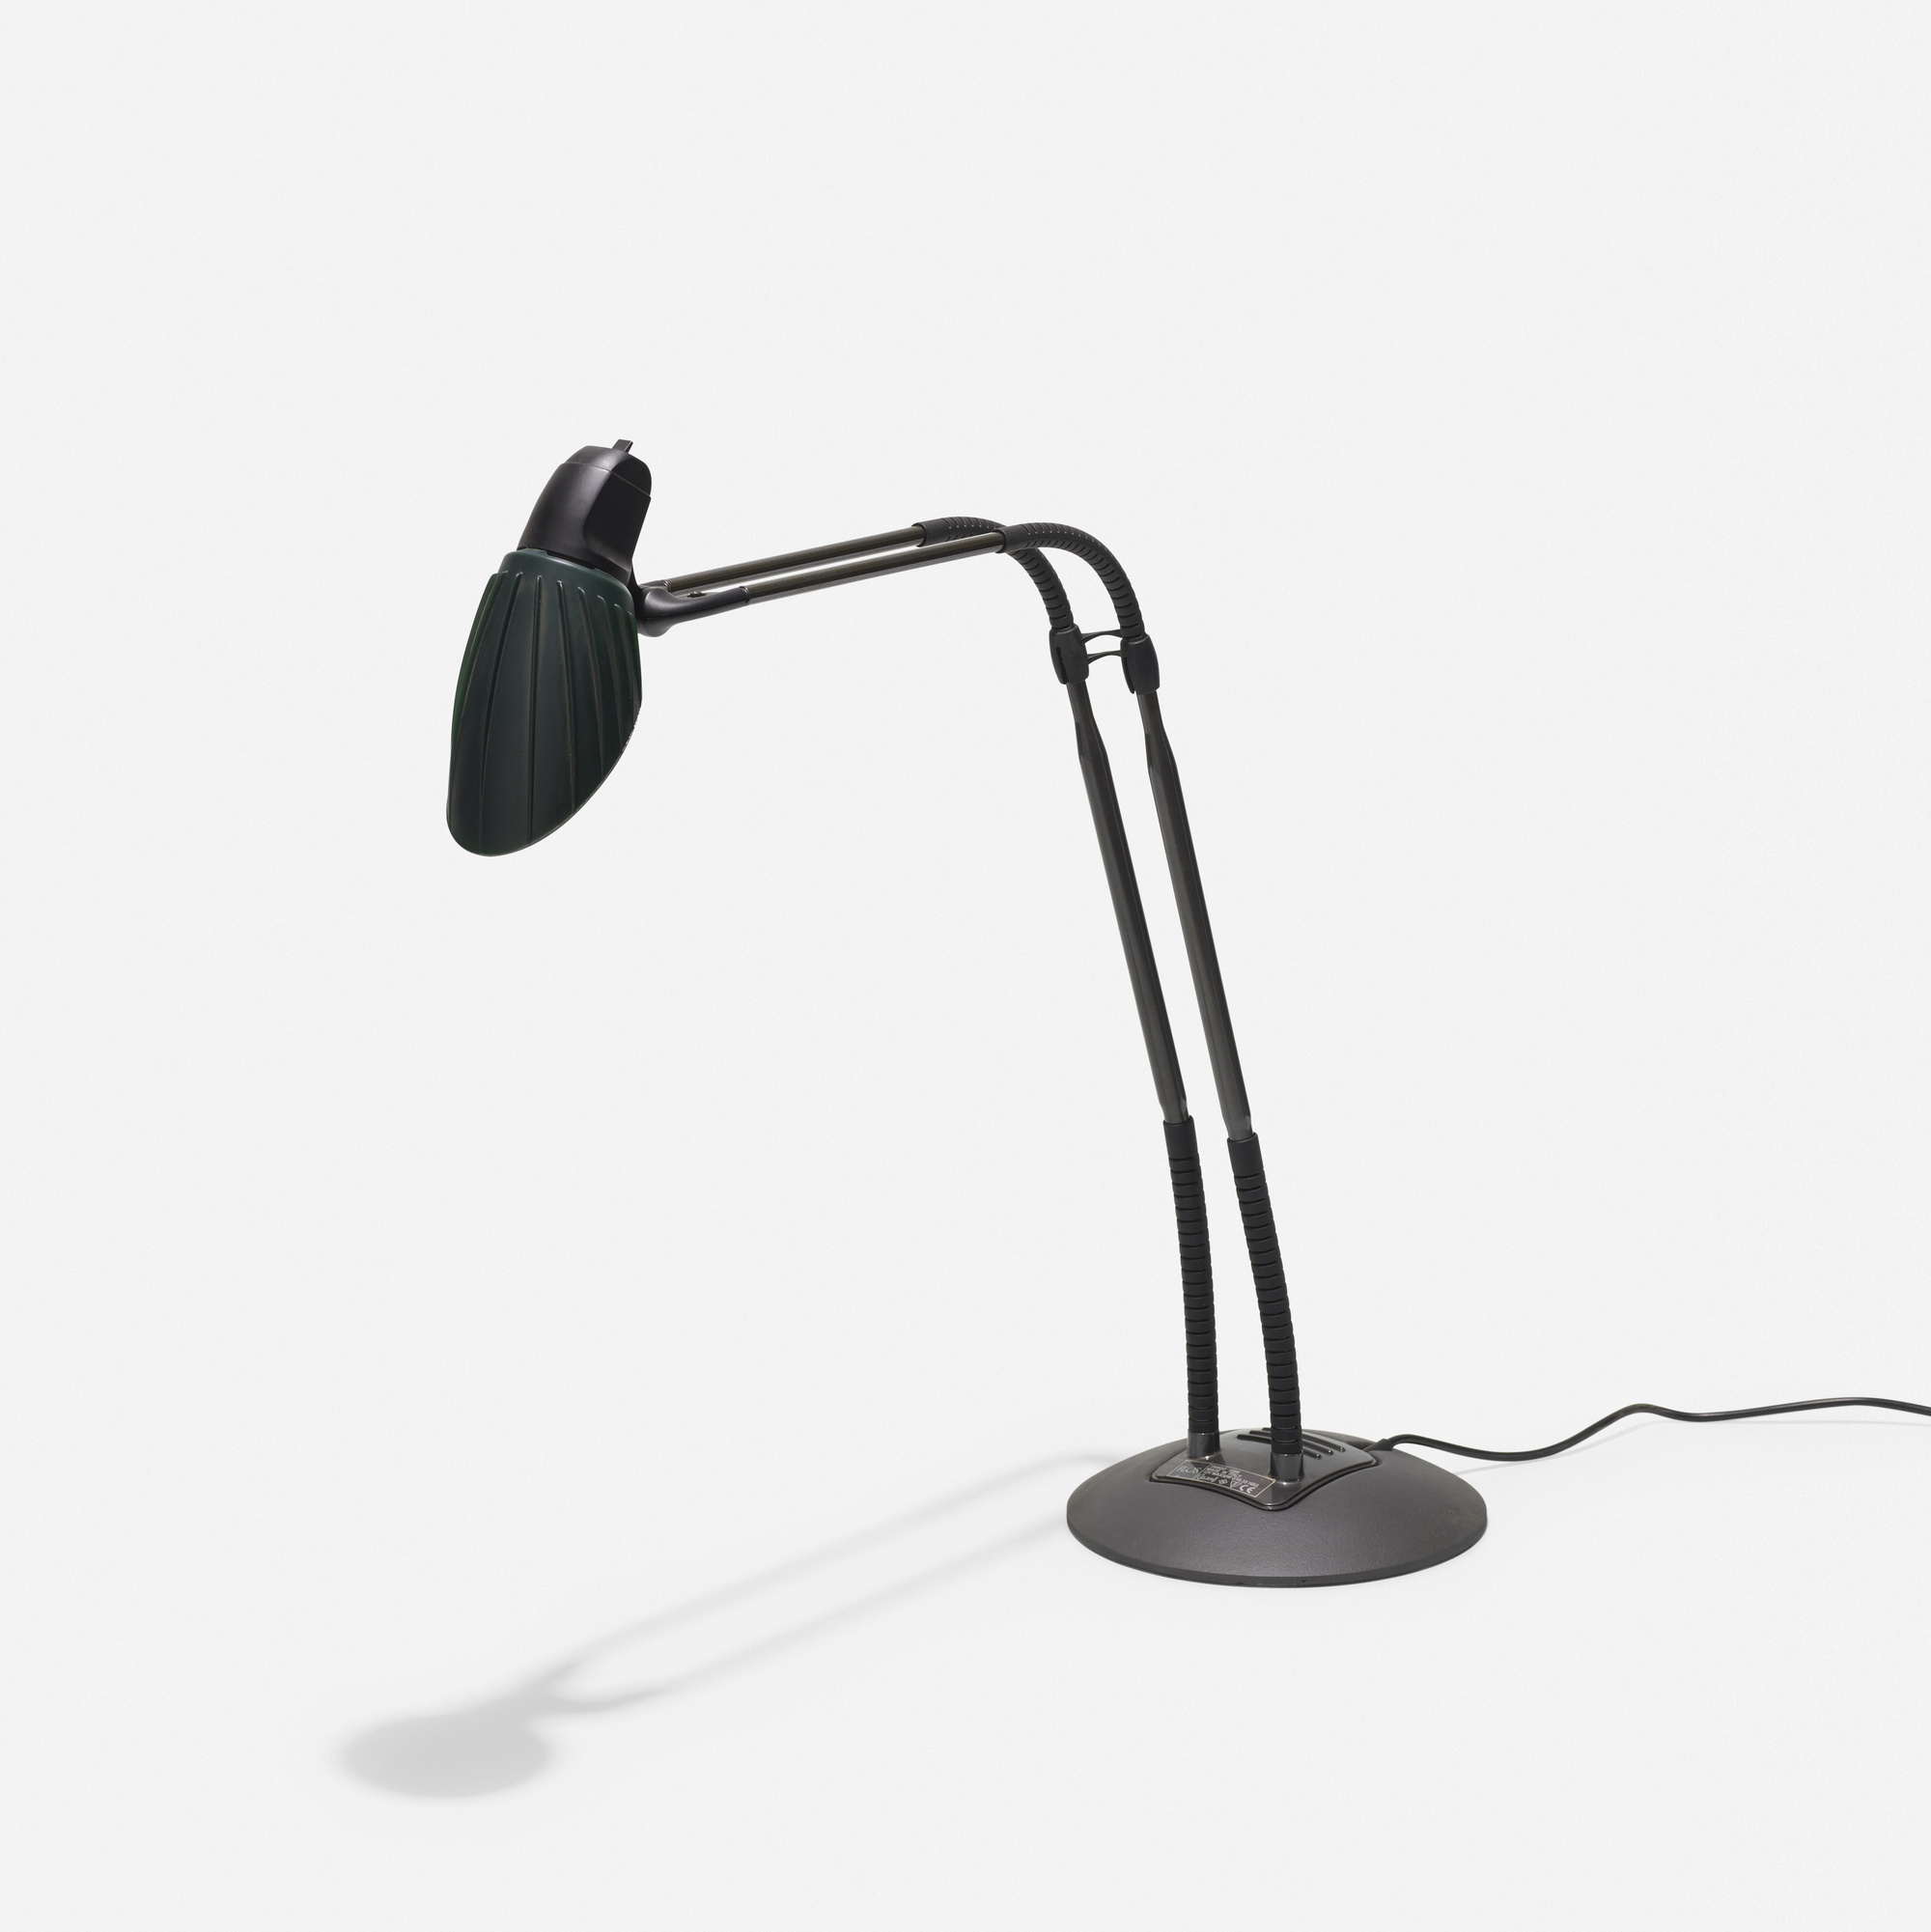 312: Stephan Copeland / Tango table lamp (1 of 2)